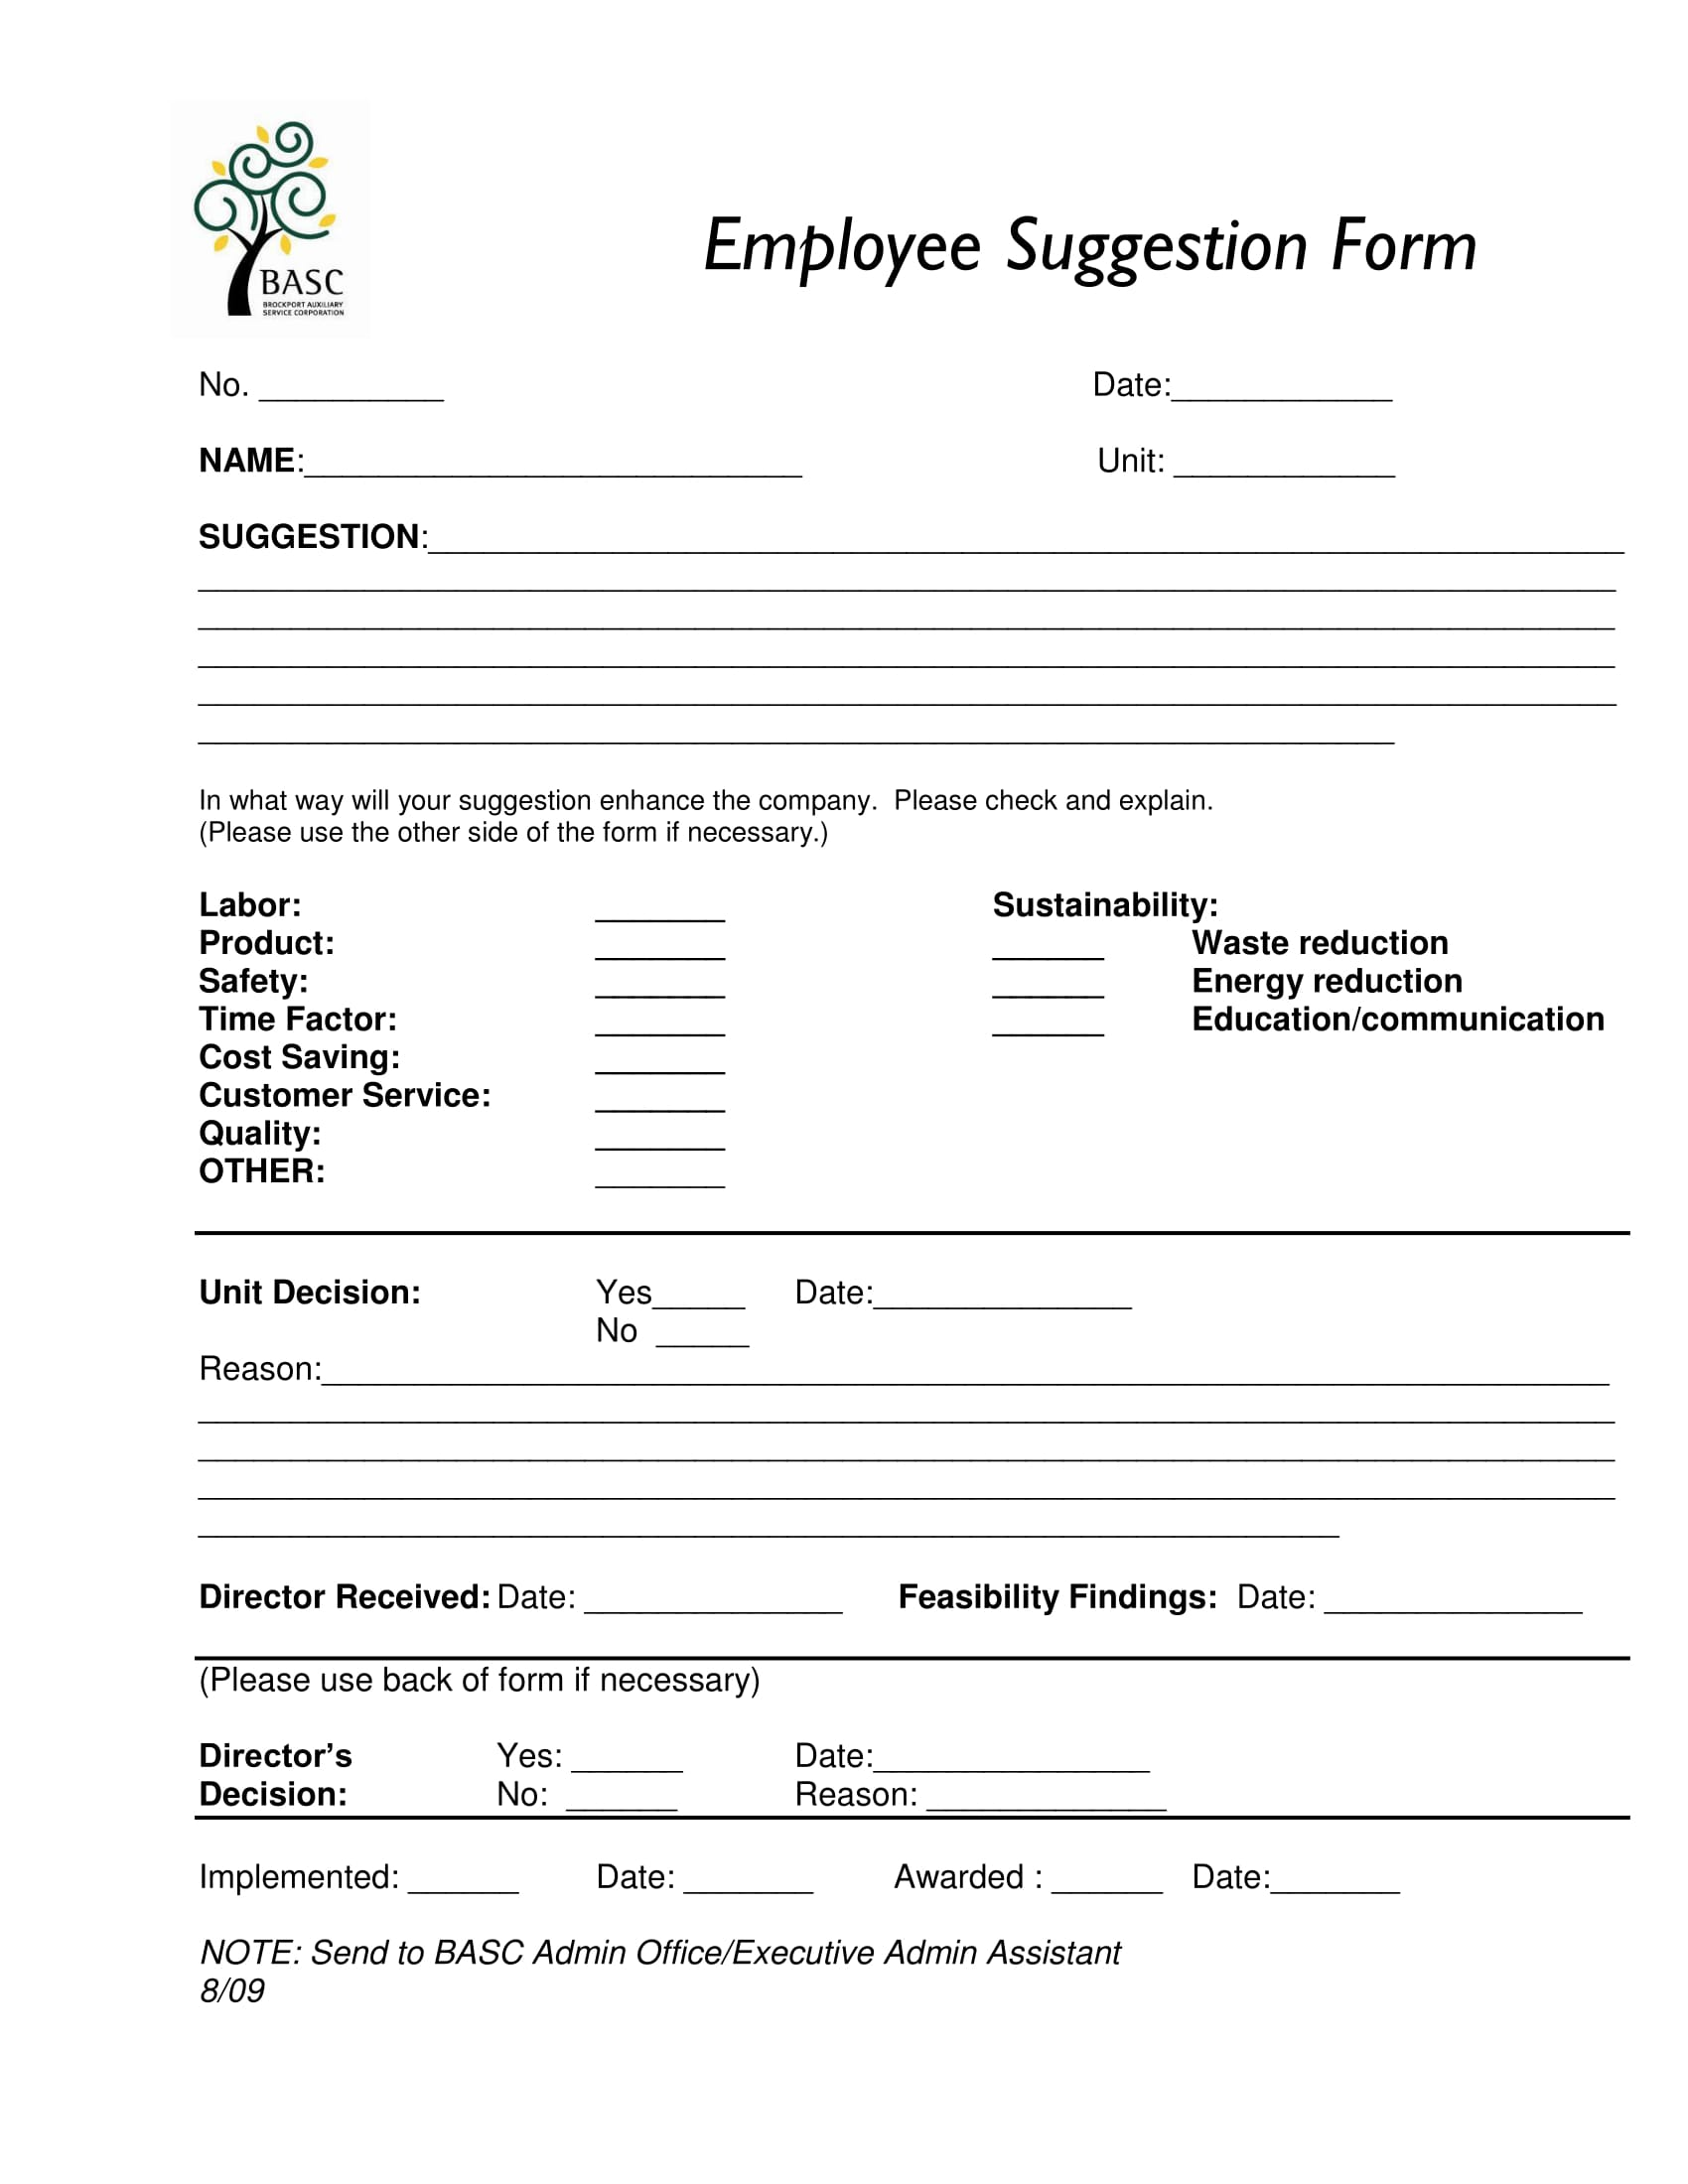 basic employee suggestion form 1